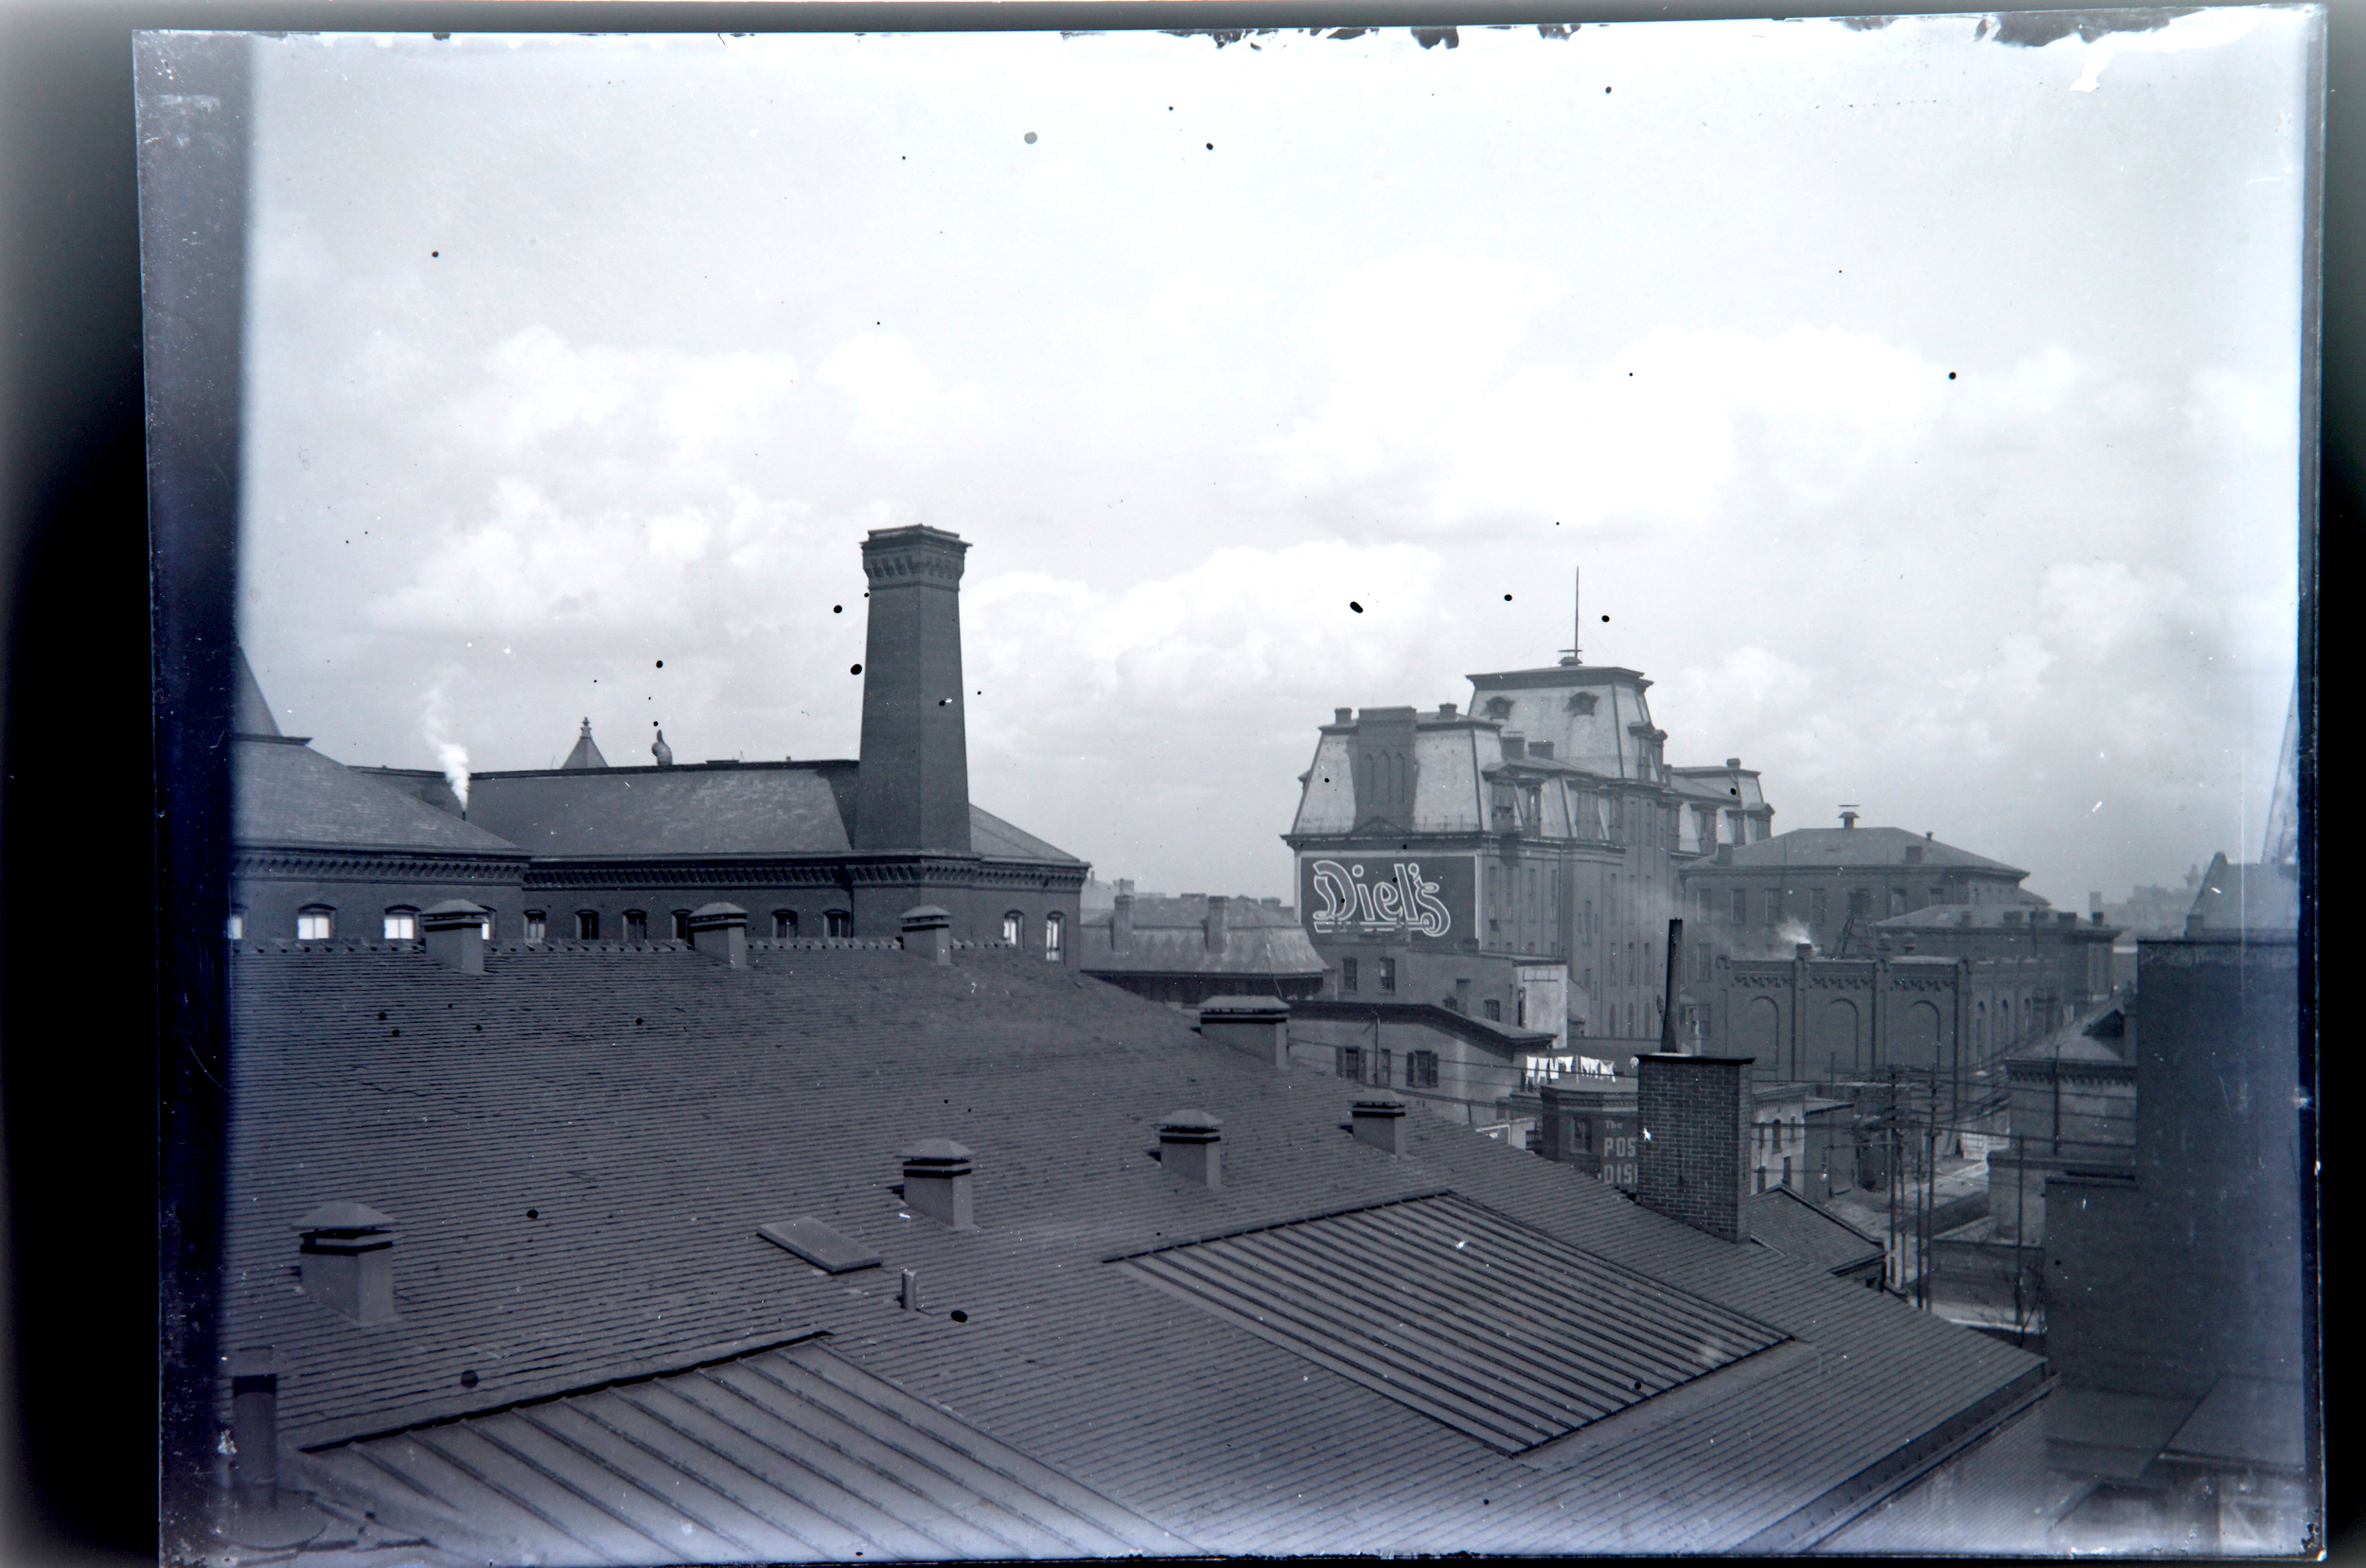 St. Louis, 1900. View from the roof.